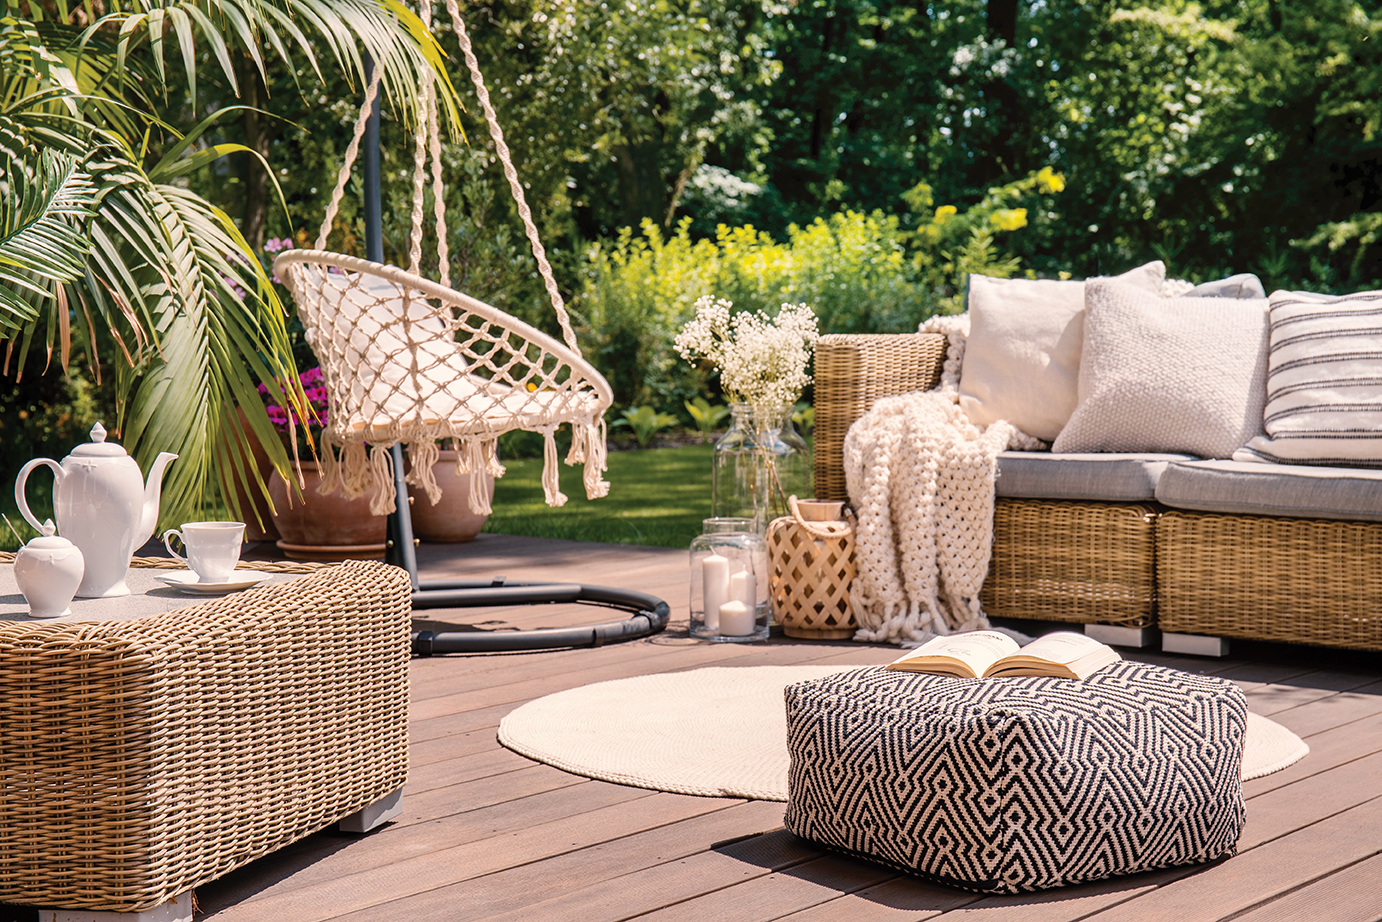 With so many great outdoor furniture options to choose from, you can curate the perfect party space. Modern pieces make your lanai feel like an inviting and comfortable extension of the home.